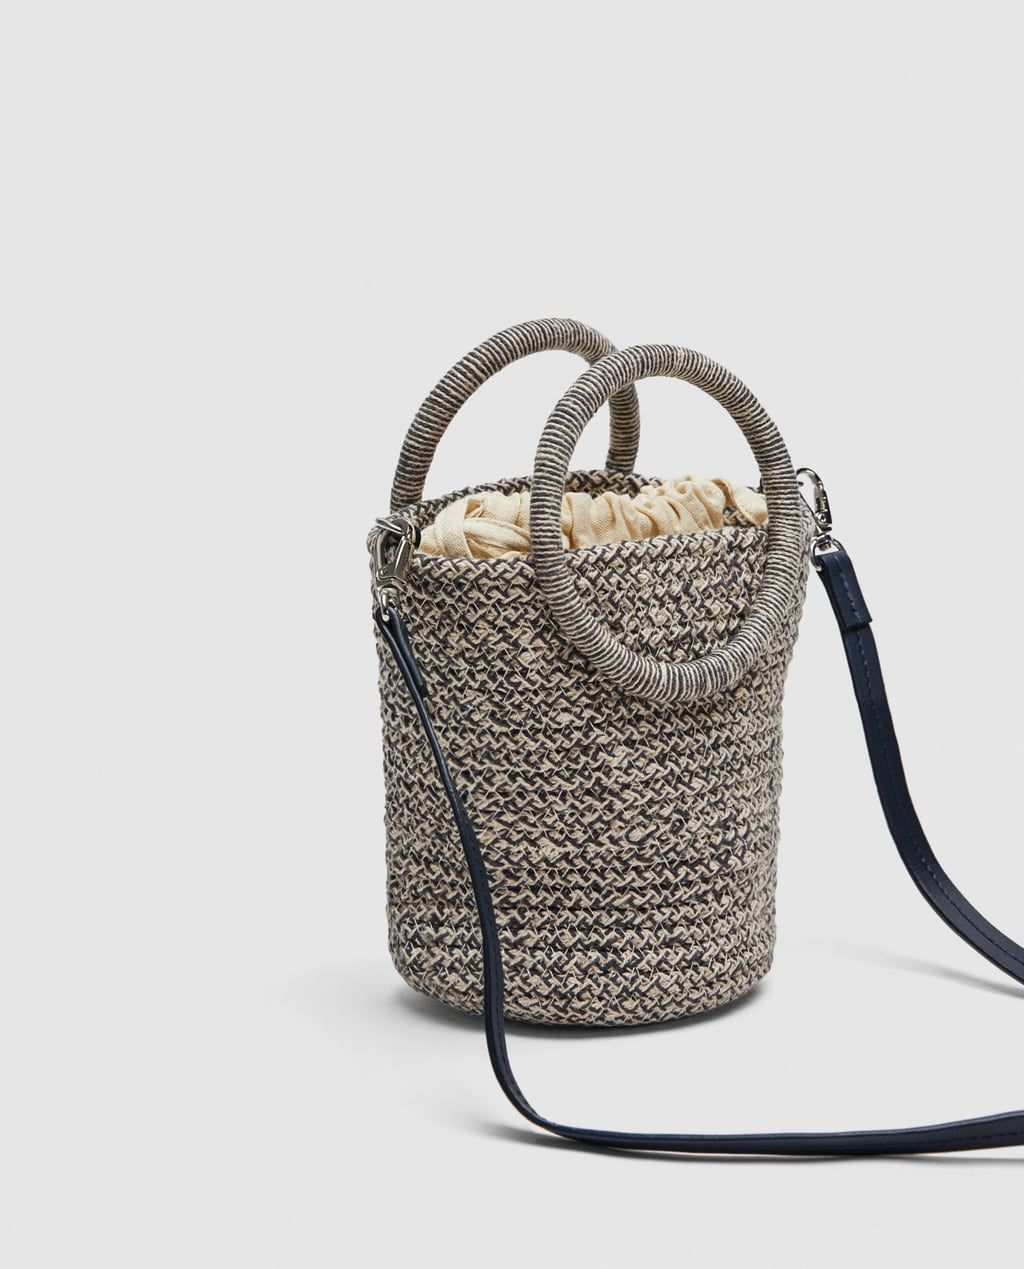 aa6e0f599c Image 3 of MINI BRAIDED TOTE BAG WITH ROUND HANDLES from Zara ...